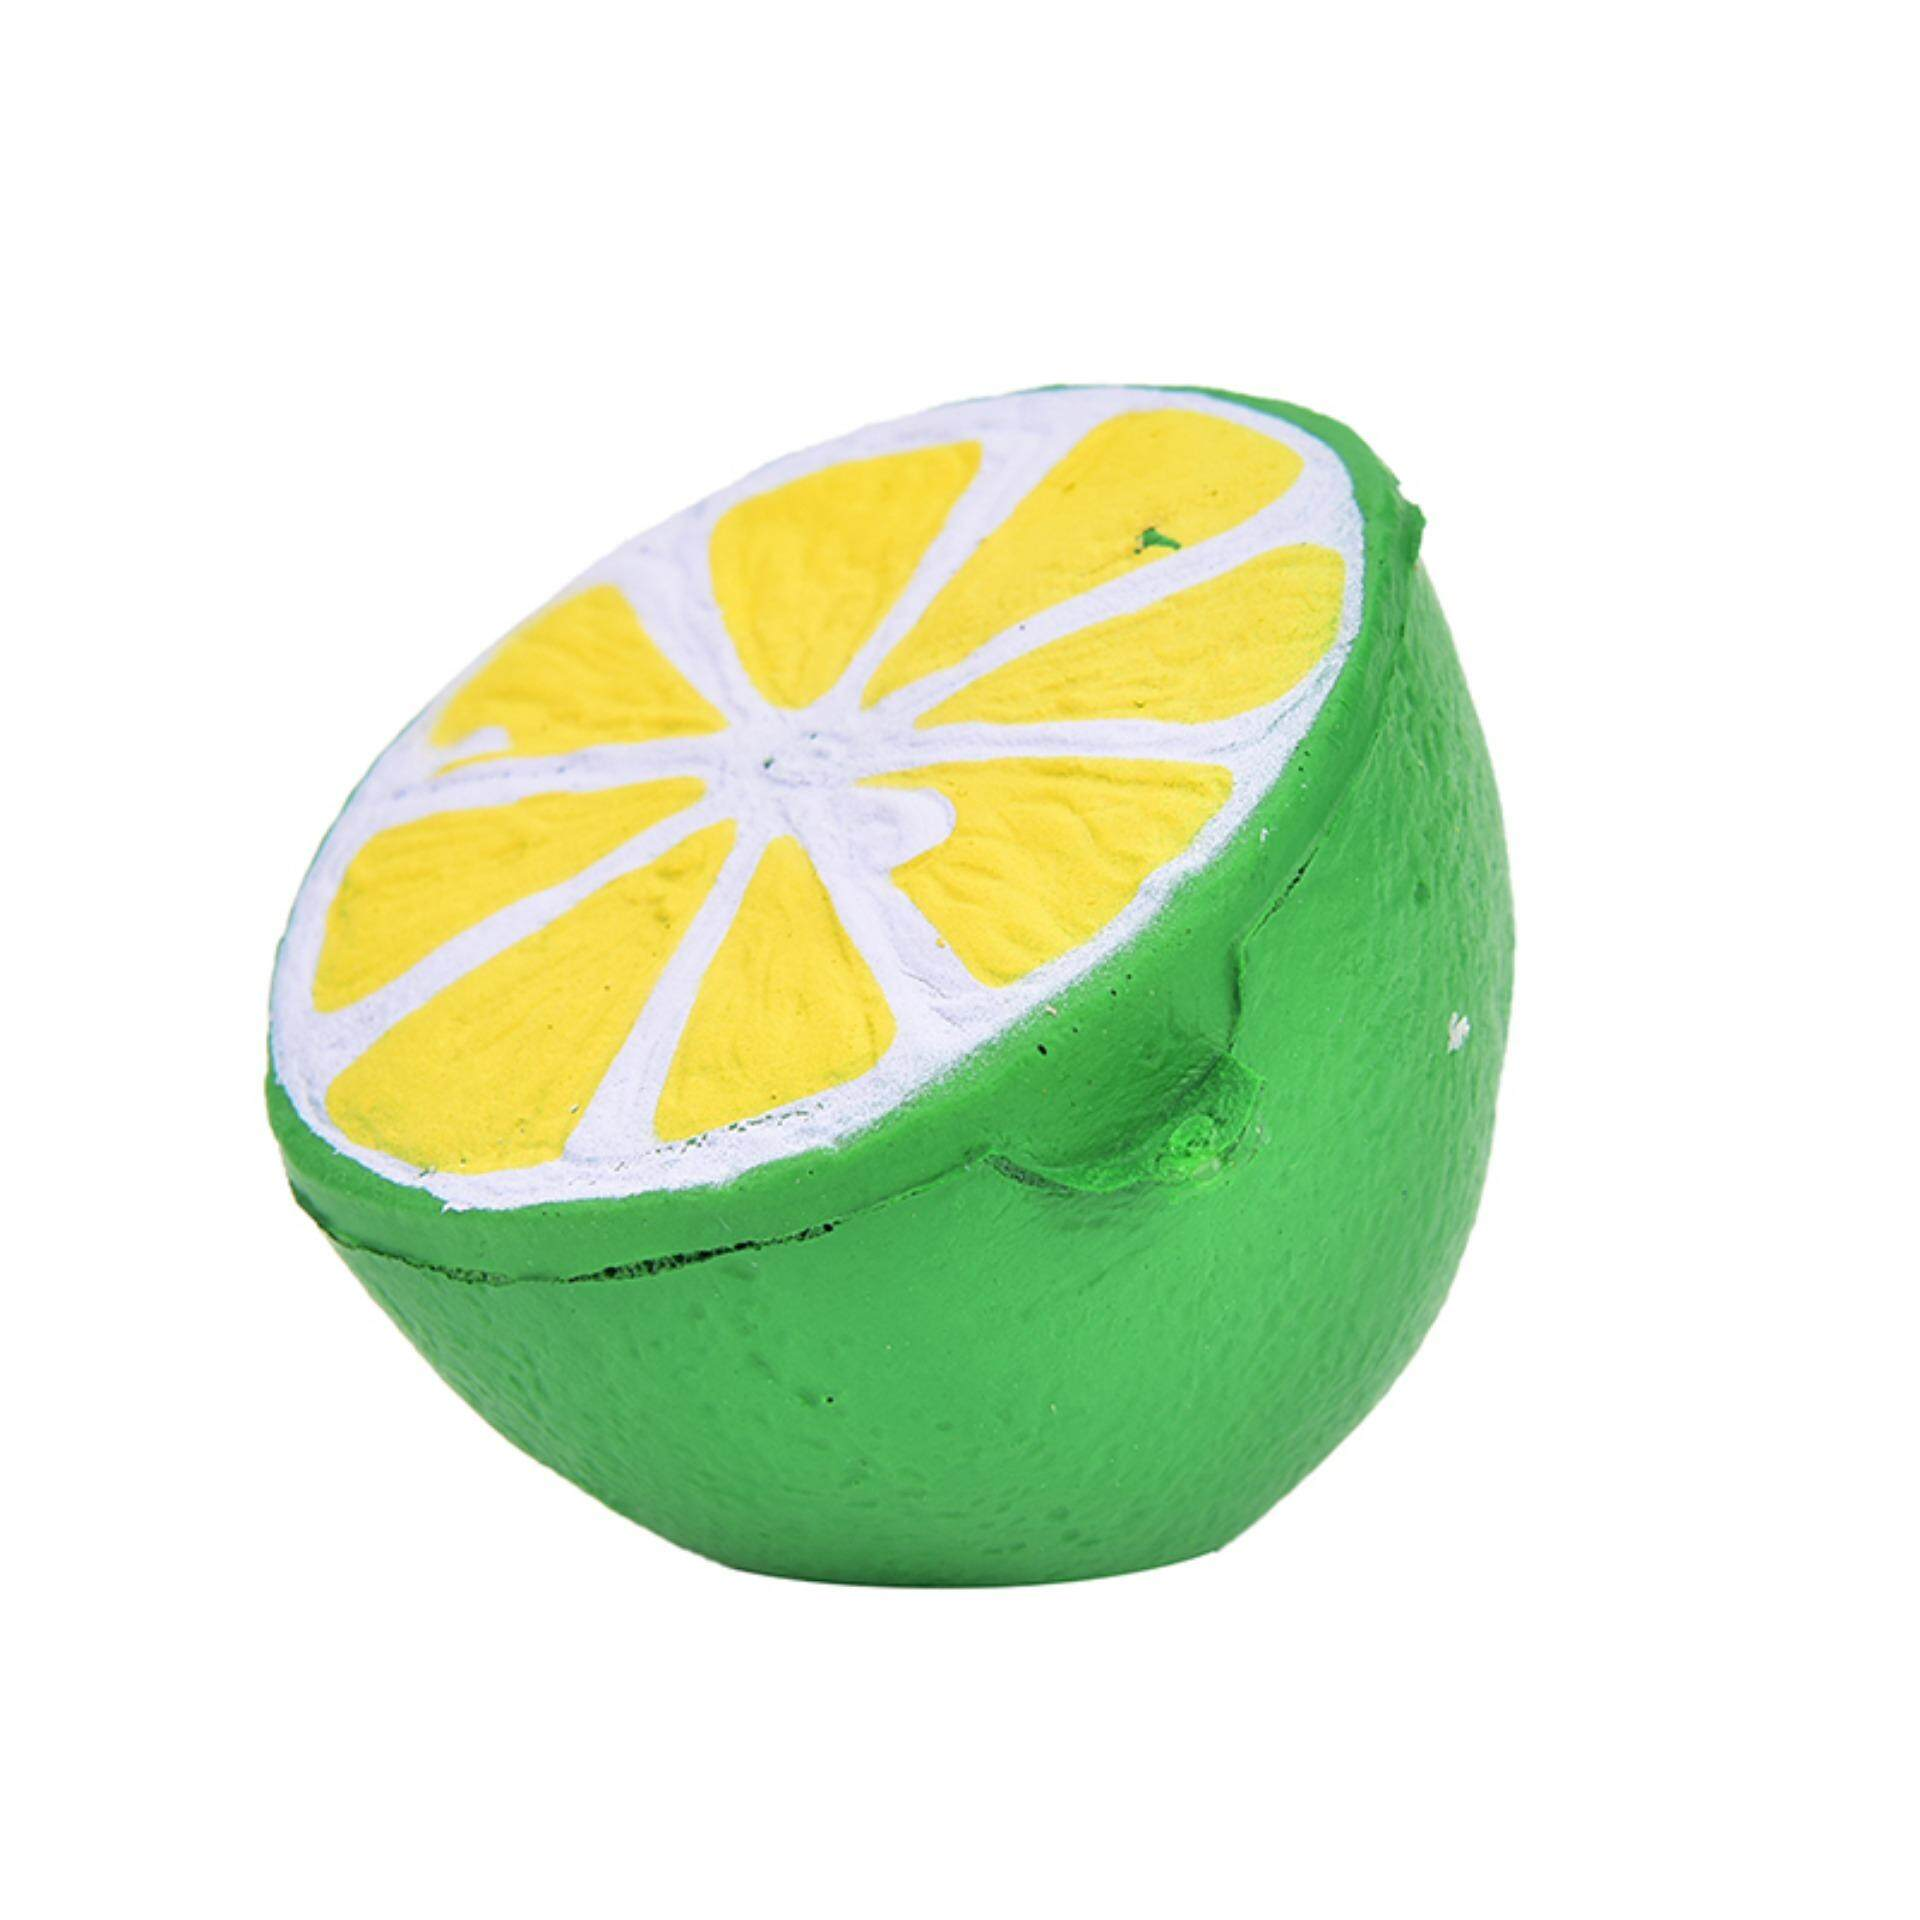 Squishy Jumbo Half Lemon Fruit Scented Super Slow Rising Keyring Kid Fun Toy Green